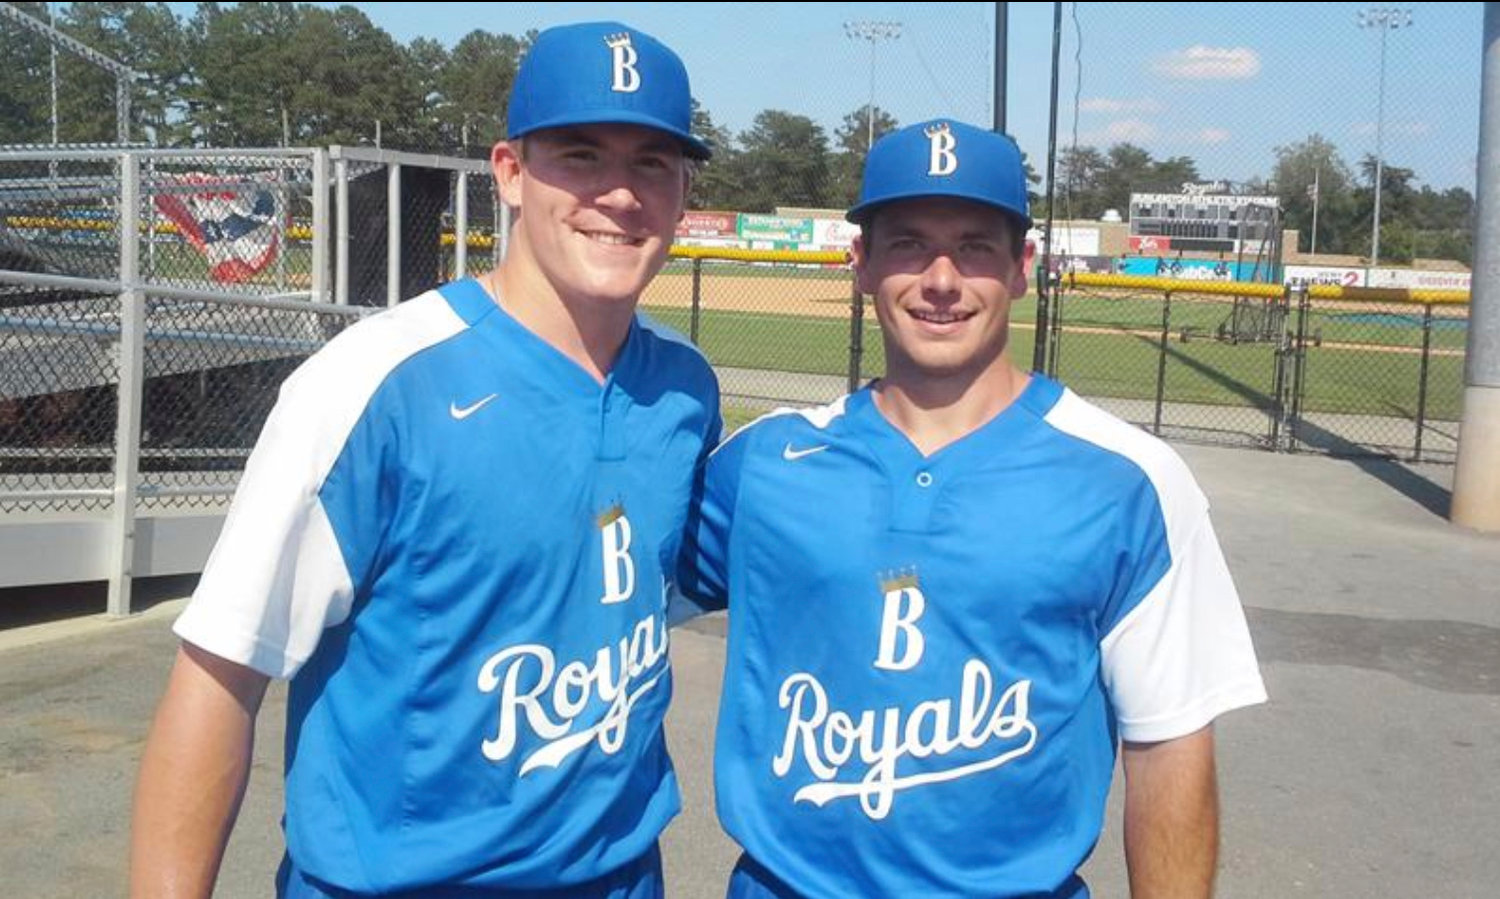 Cartersville native Elliott Anderson, left, and Drew Parrish pose for a photo after joining the Burlington Royals from their respective college programs, Auburn and Florida State. Anderson continues to dazzle on the mound for Burlington, having not allowed an earned run through his first six career appearances.